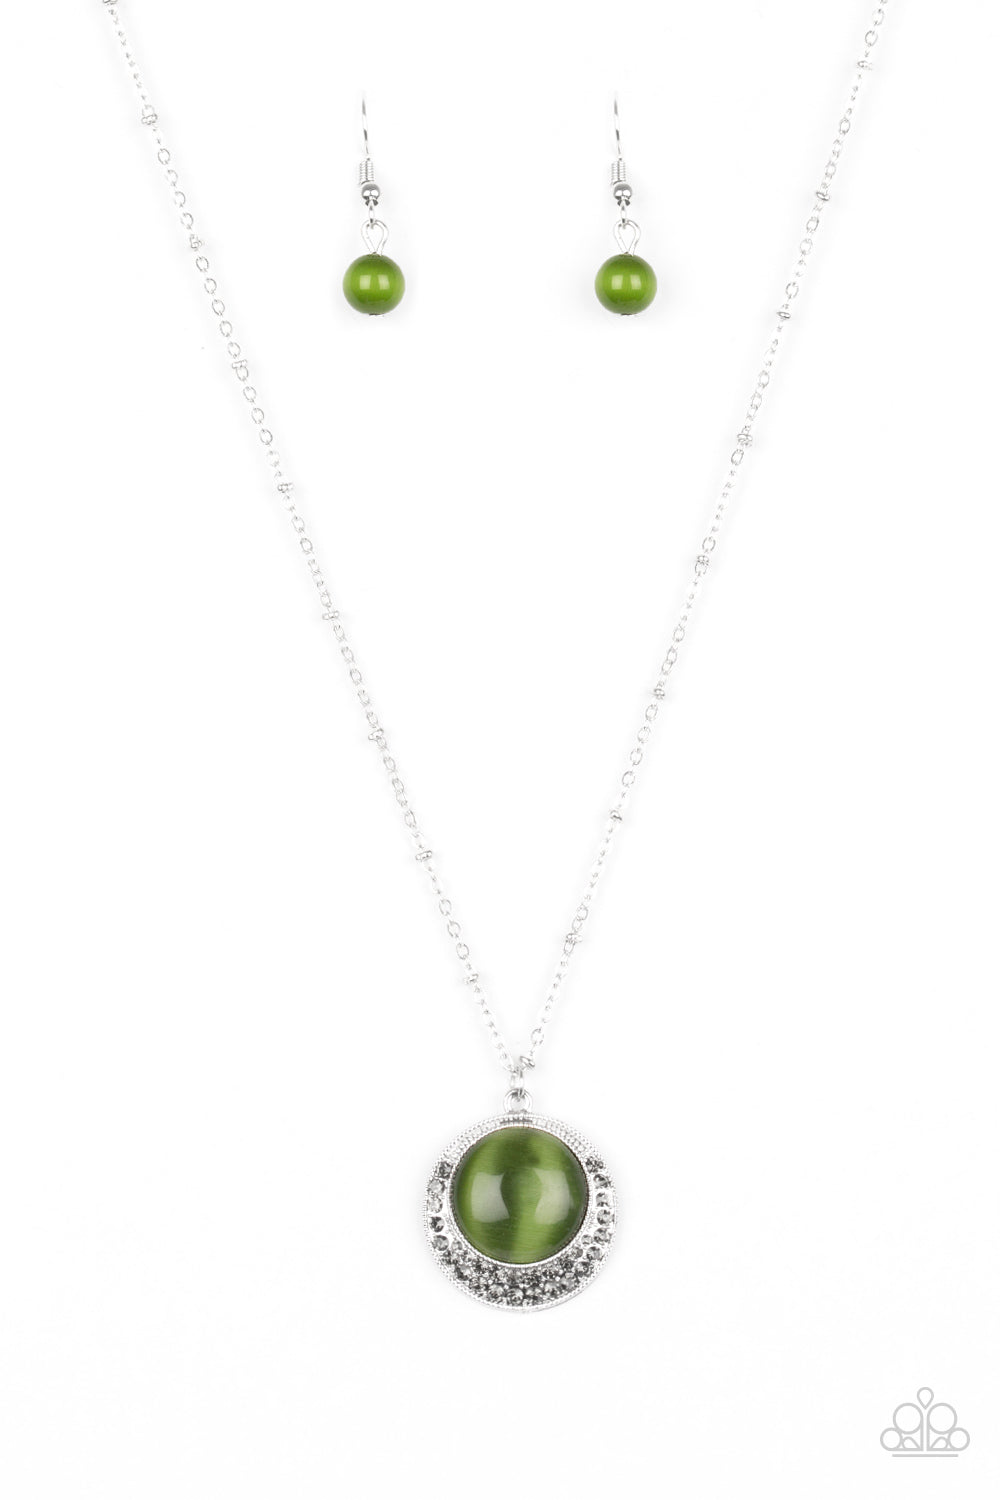 Paparazzi Accessories - Dream Girl Glow - Green Necklace Set - JMJ Jewelry Collection